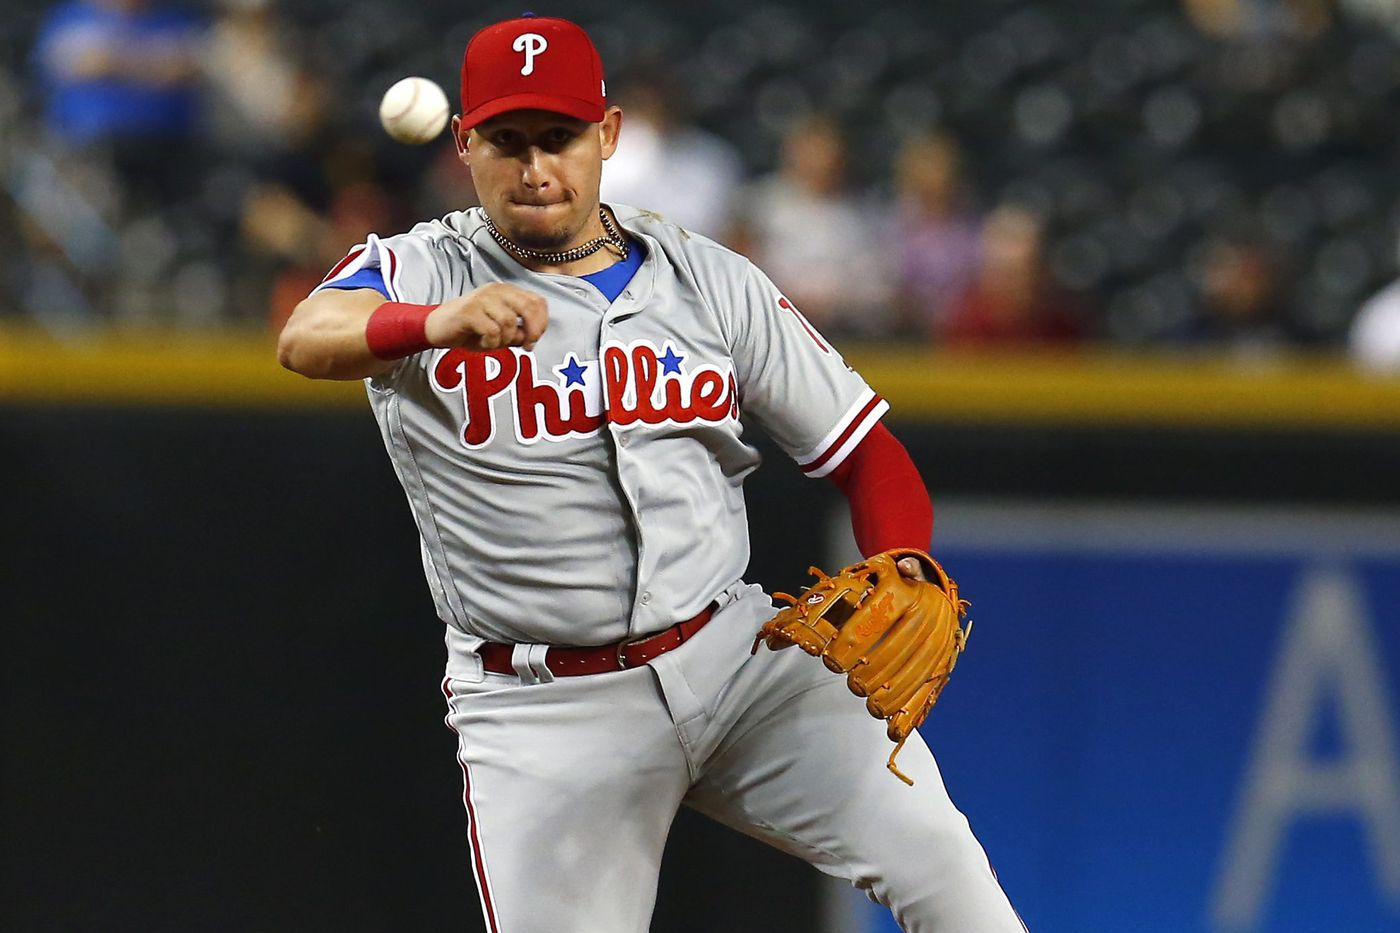 New Phillie Asdrubal Cabrera 'fairly motivated' to prove he can handle return to shortstop